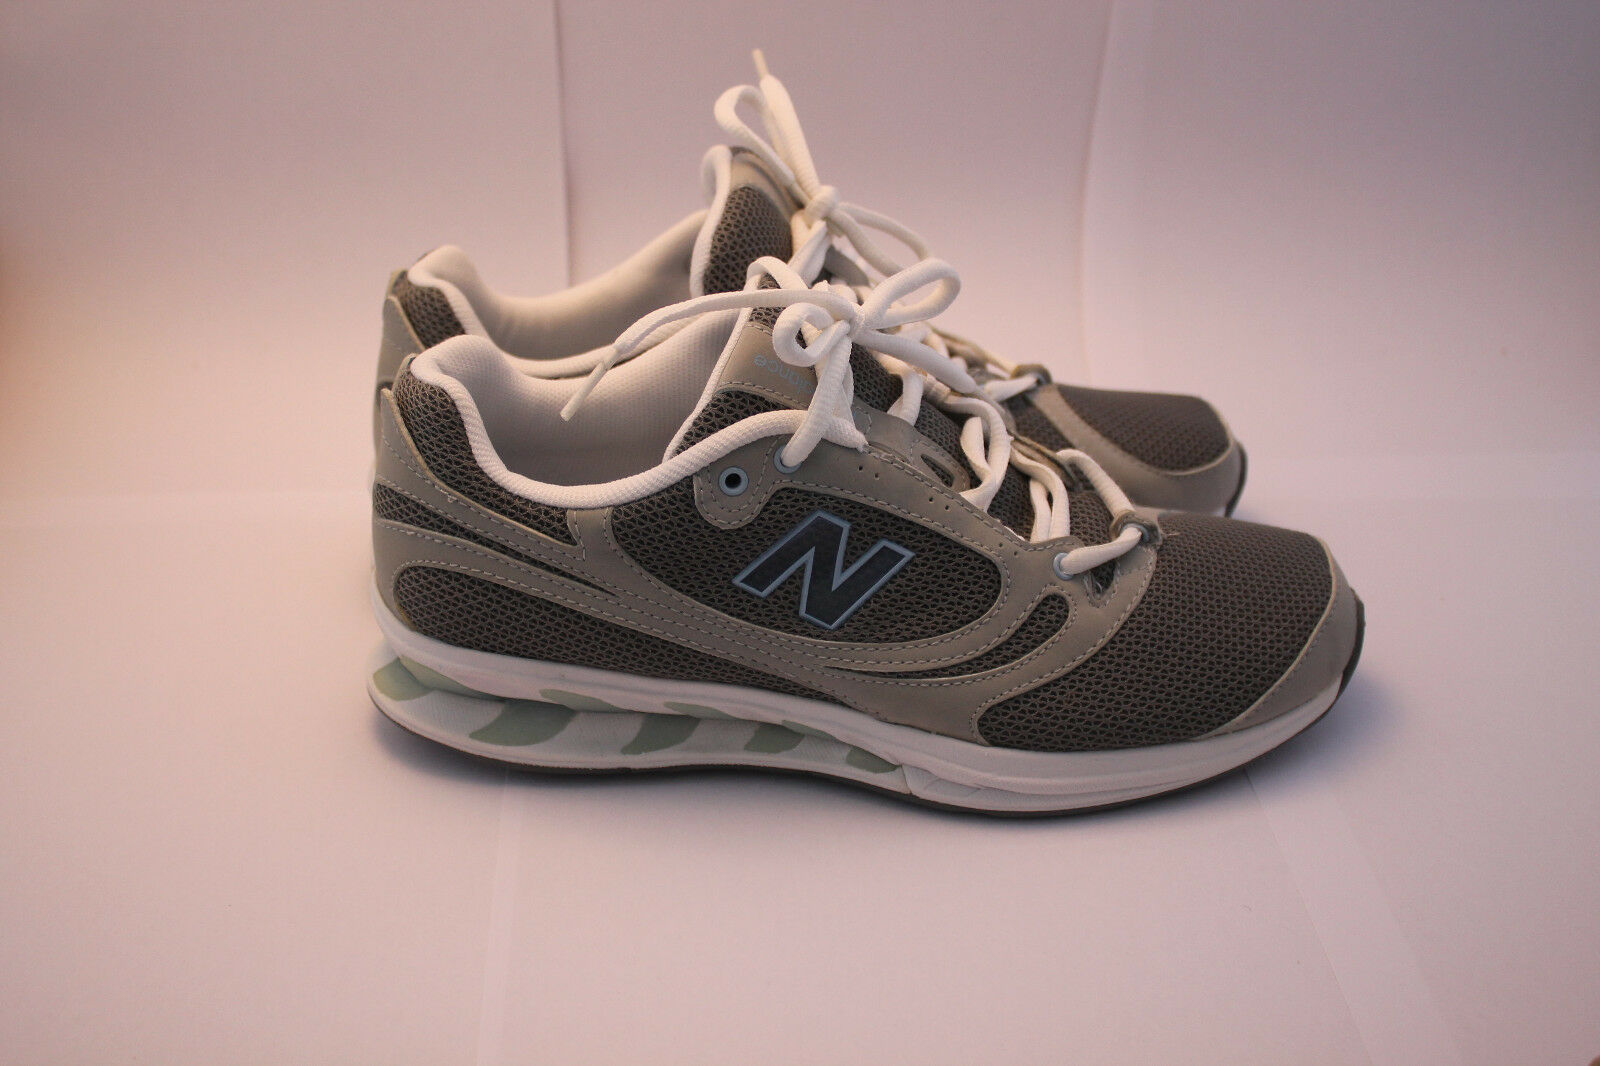 NEW BALANCE - WW850GB NEU - NEU WW850GB - Gr. 37,5 fa0efd